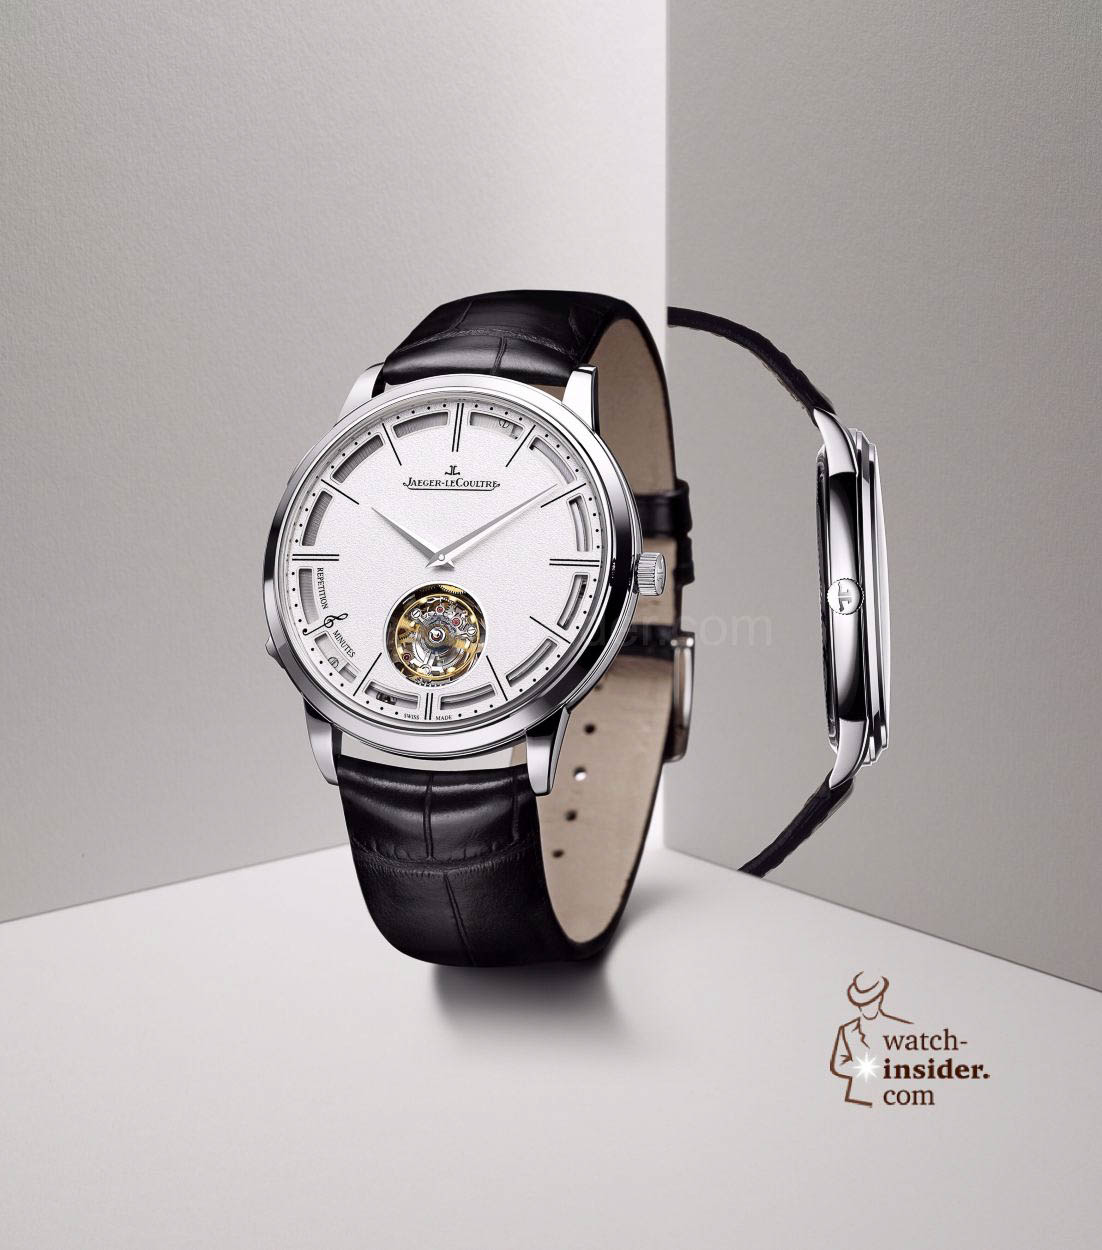 Pre-SIHH 2014: Jaeger-LeCoultre Master Ultra Thin Minute Repeater Flying Tourbillon